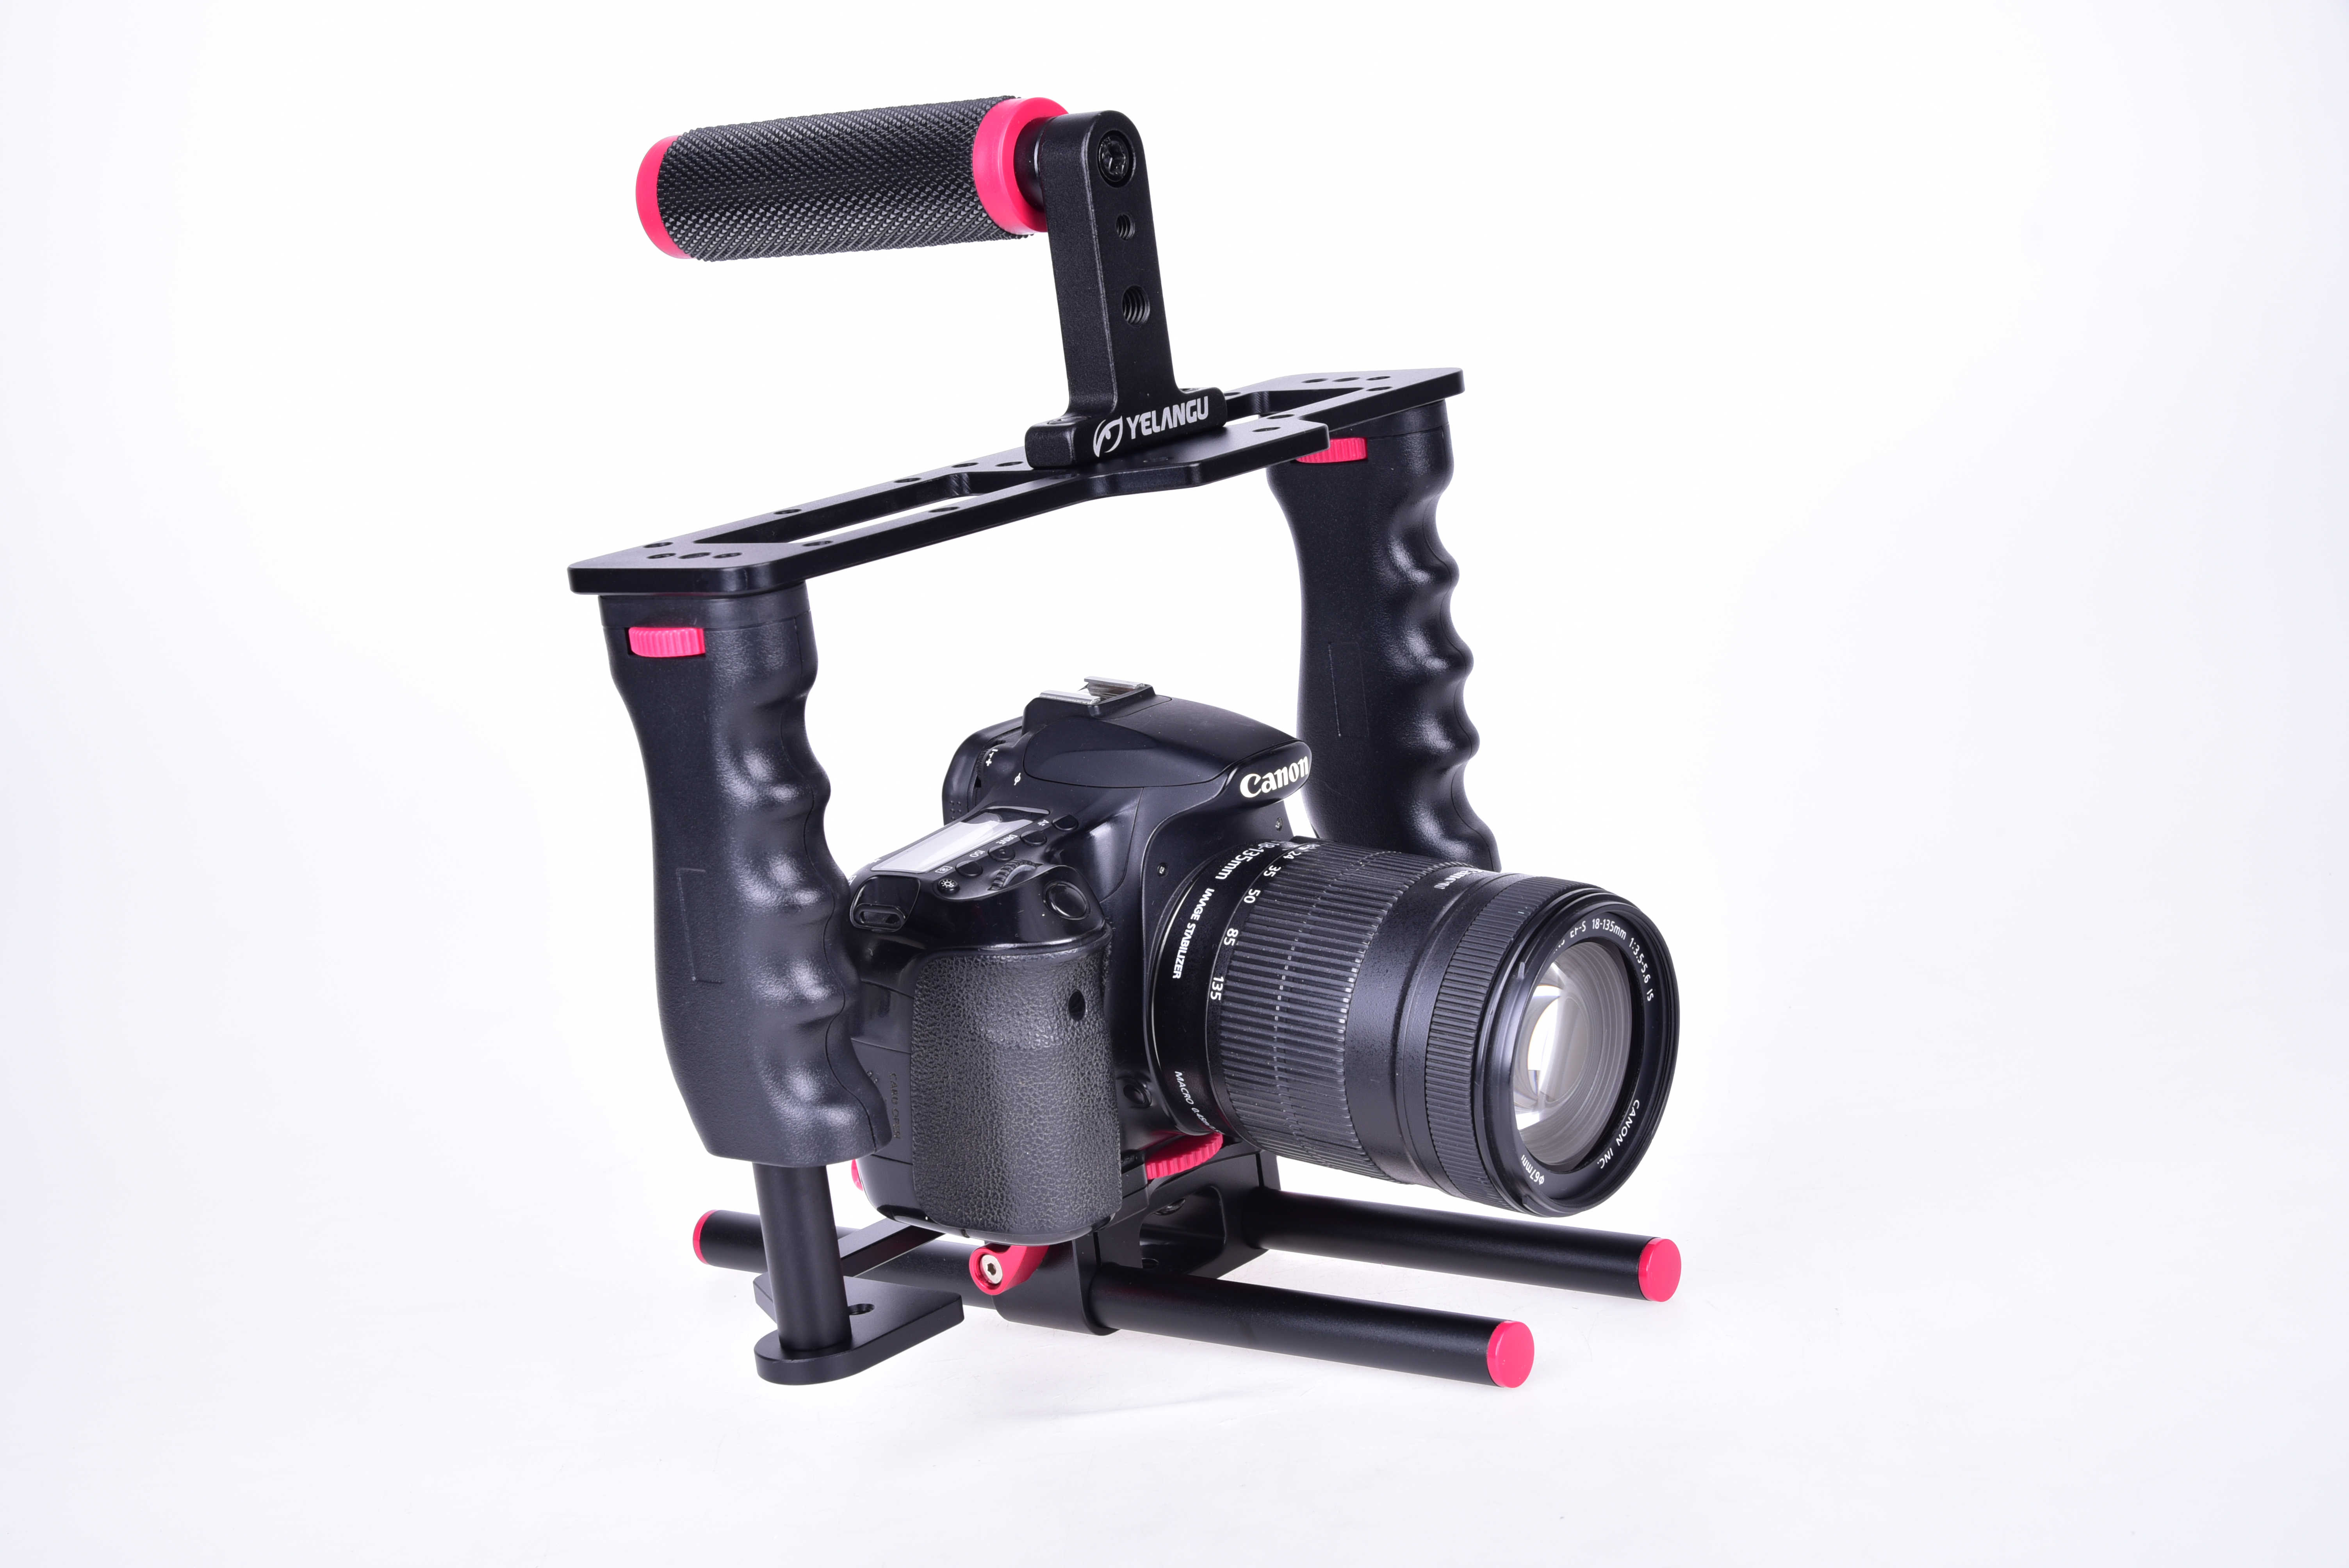 etc. Such as Travelling Live Broadcasting YELANGU Handheld Portable Metal Phone Camera Cage Stabilizer Rig Handle Grip Kit Portable and Lightweight Perfect for Outdoor Uses Camera Cage